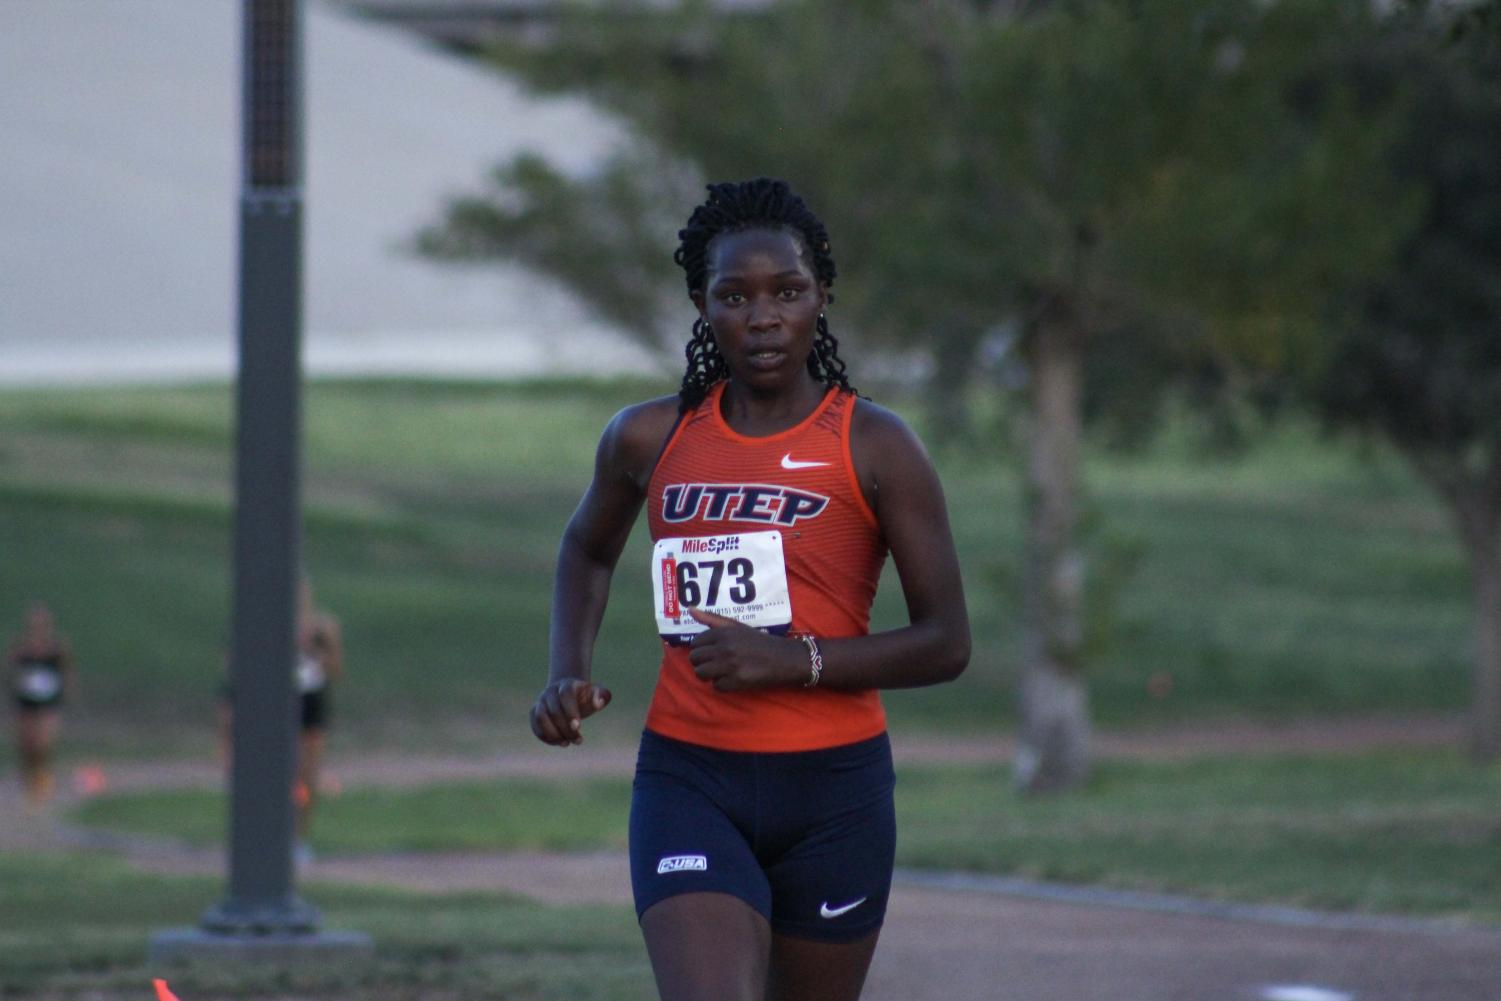 Junior, Carolyne Chepkosgei finished 4th place at El Chamizal on Sept. 13, 2019.